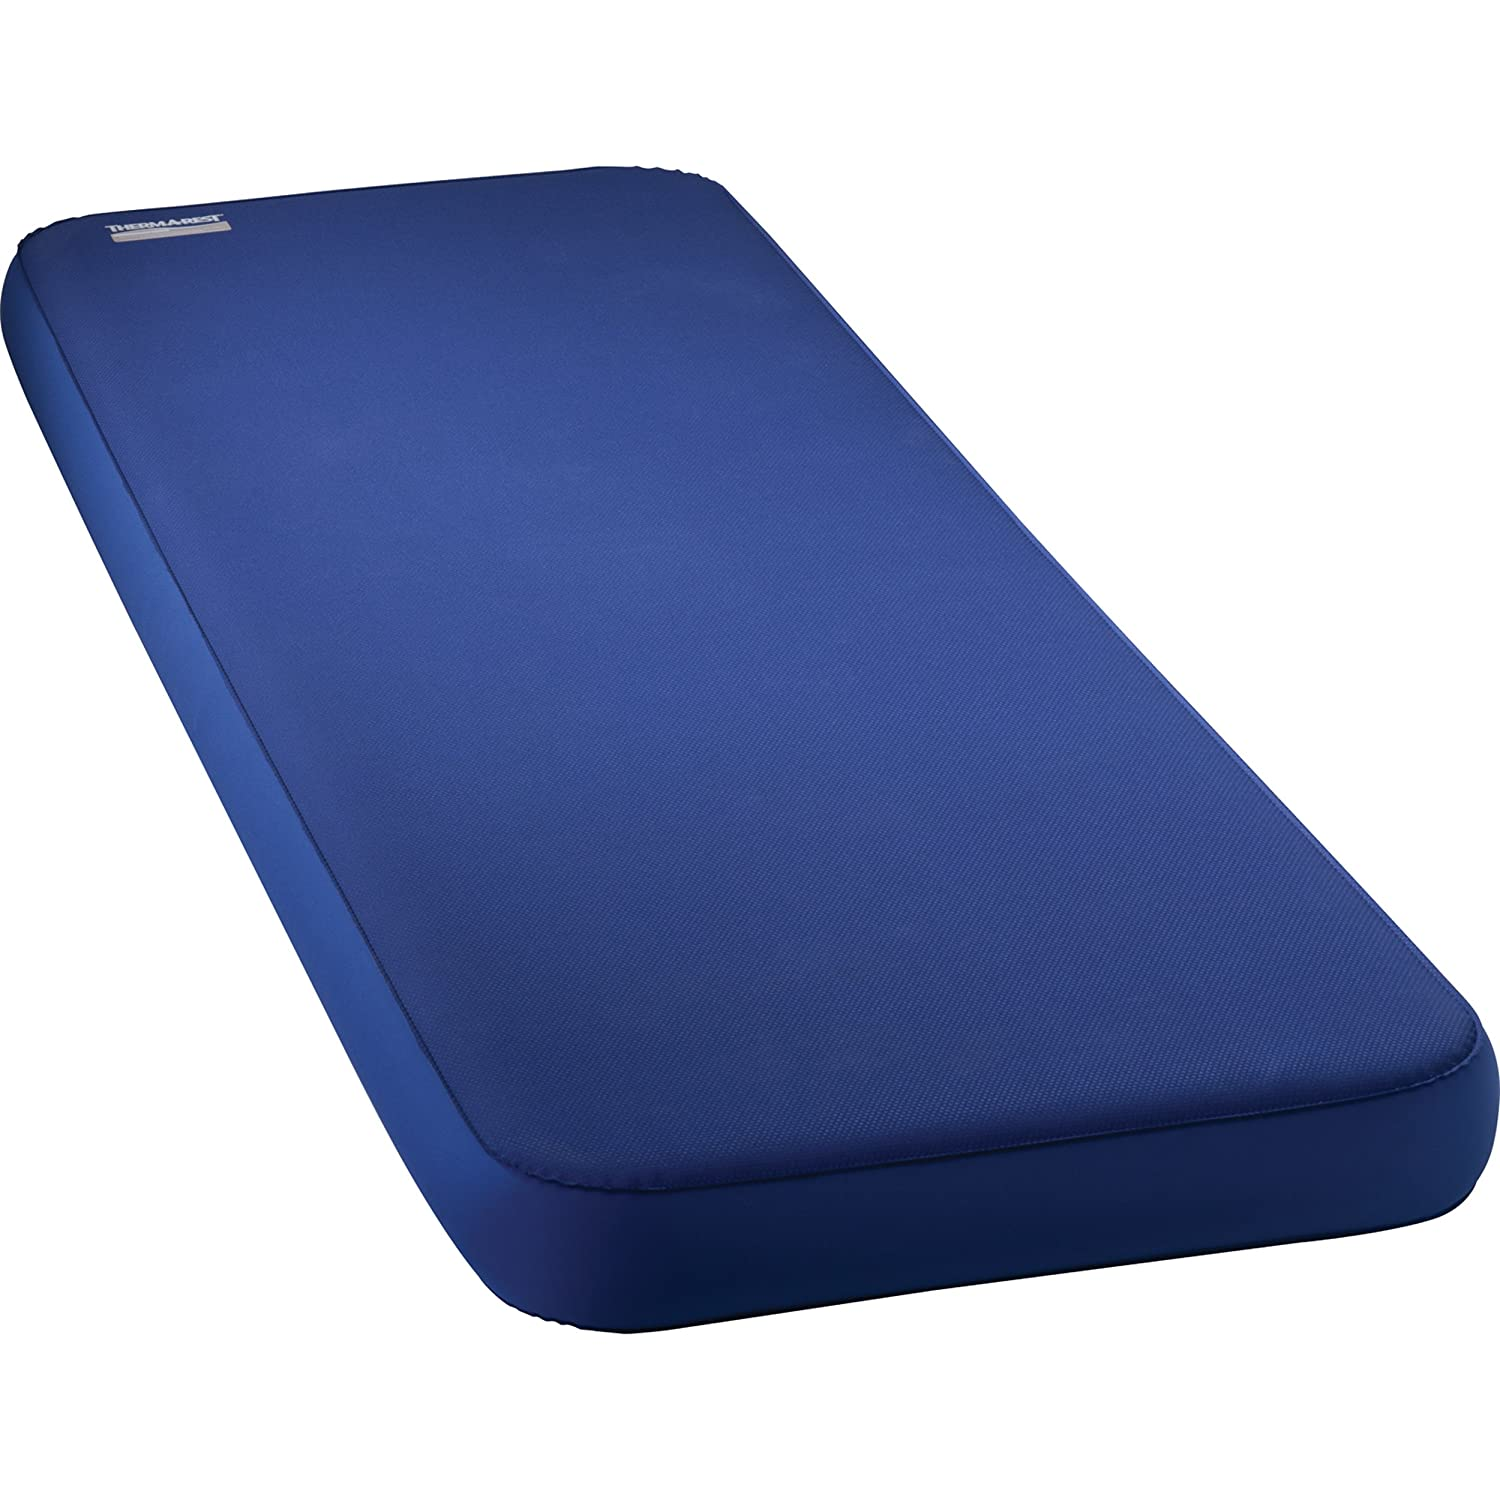 Therm-A-Rest MondoKing 3D Self-Inflating Foam Camping Mattress